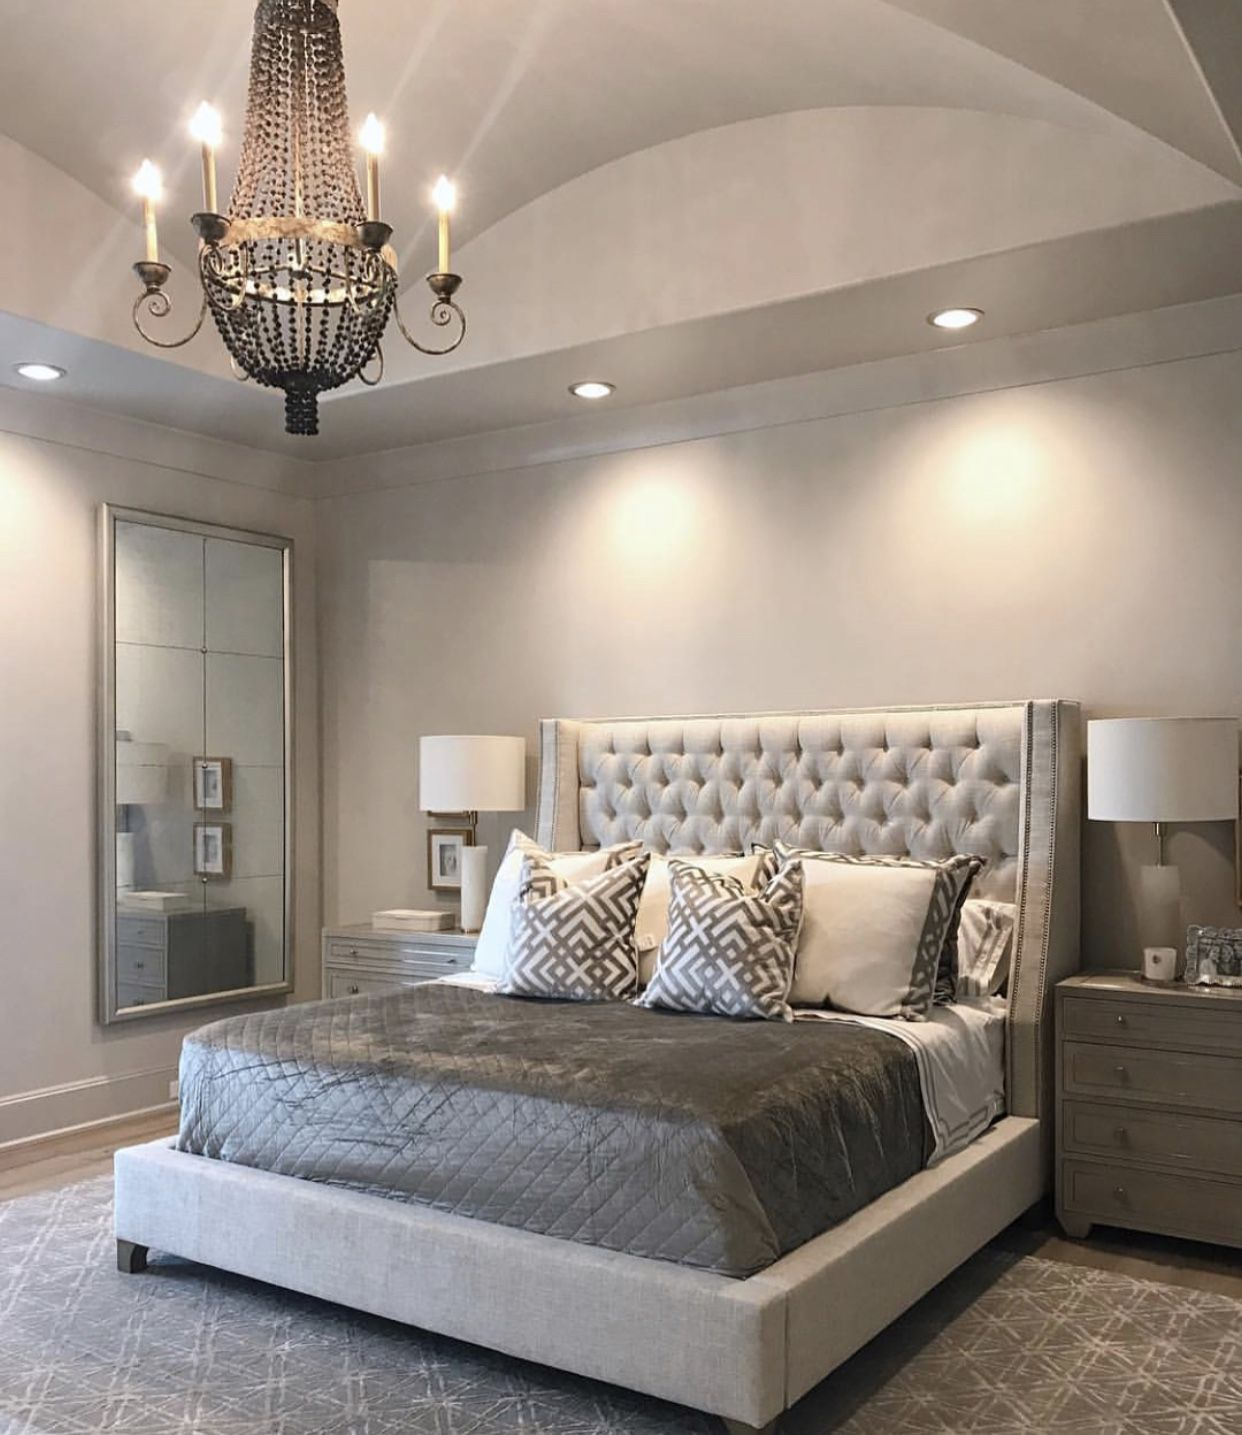 5 Calming Bedroom Design Ideas The Budget Decorator: Pin By Caryn Zehnder On Glamorous Lives, Stylish Spaces